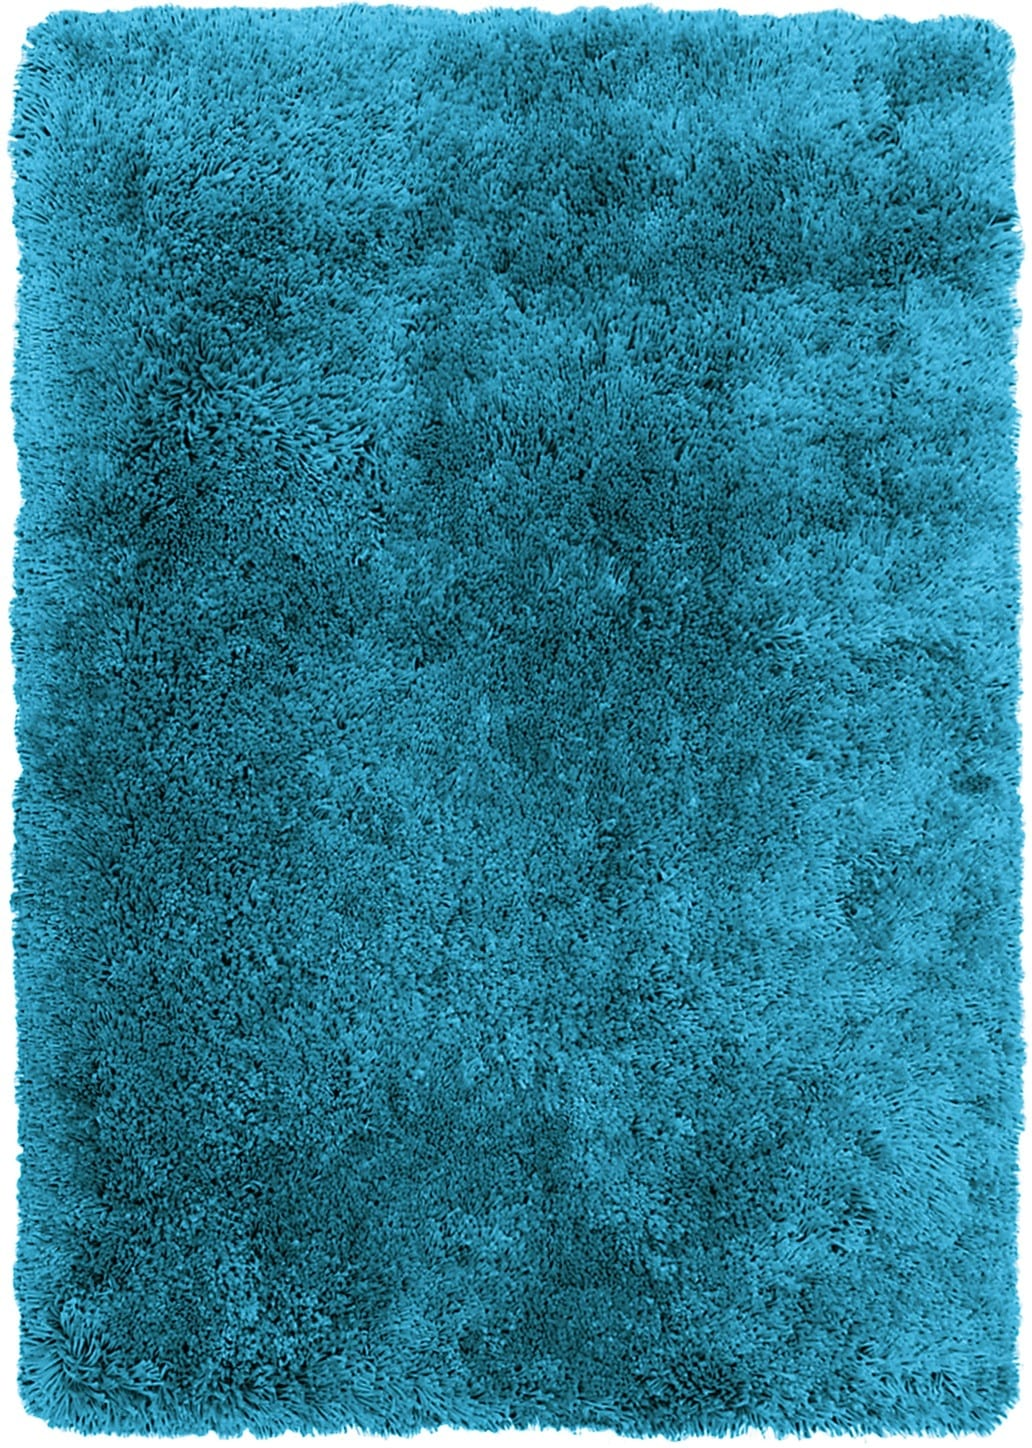 Aqua Fashion Shag Area Rug – 4' x 5'